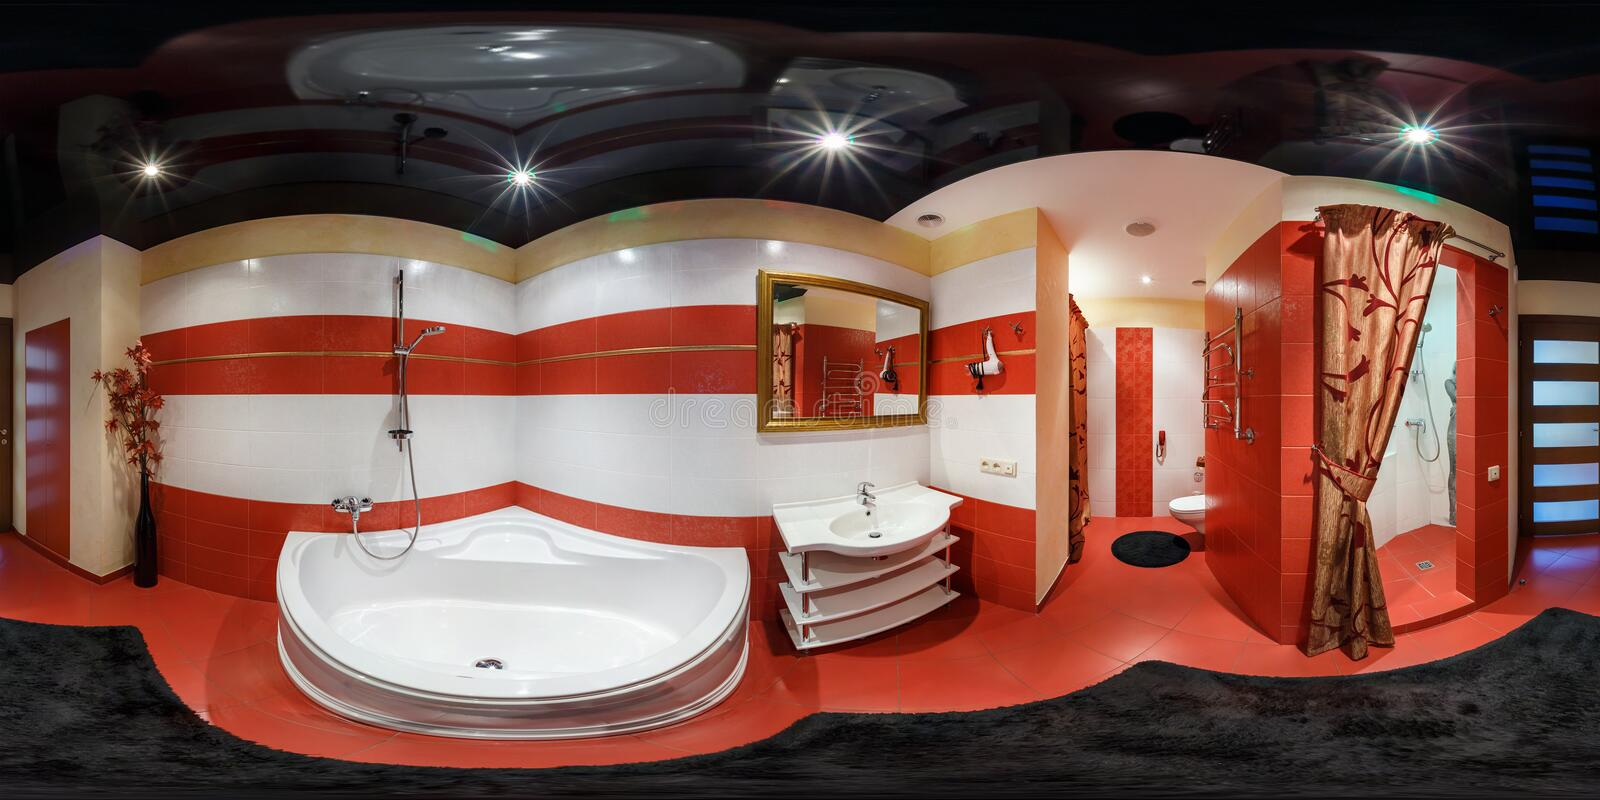 GRODNO, BELARUS - FEBRUARY 26, 2014: Full spherical 360 degrees seamless panorama in equirectangular equidistant projection,. Panorama in interior bathroom in royalty free stock image